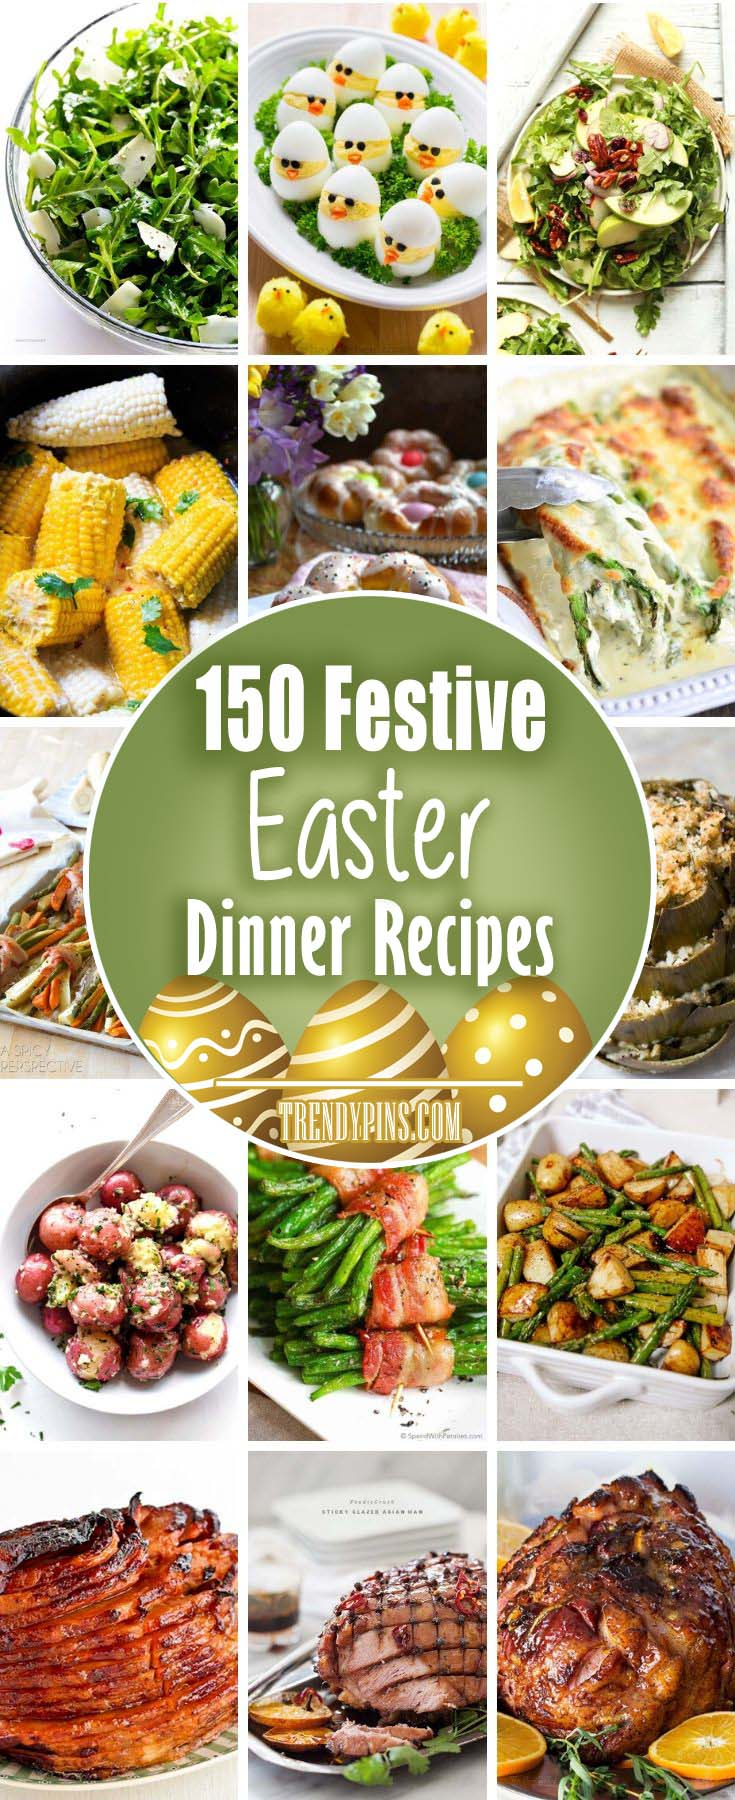 There are a few great ideas that can help you have a big wonderful Easter dinner. Try one of these ideas. #Easter #dinner #recipes #trendypins